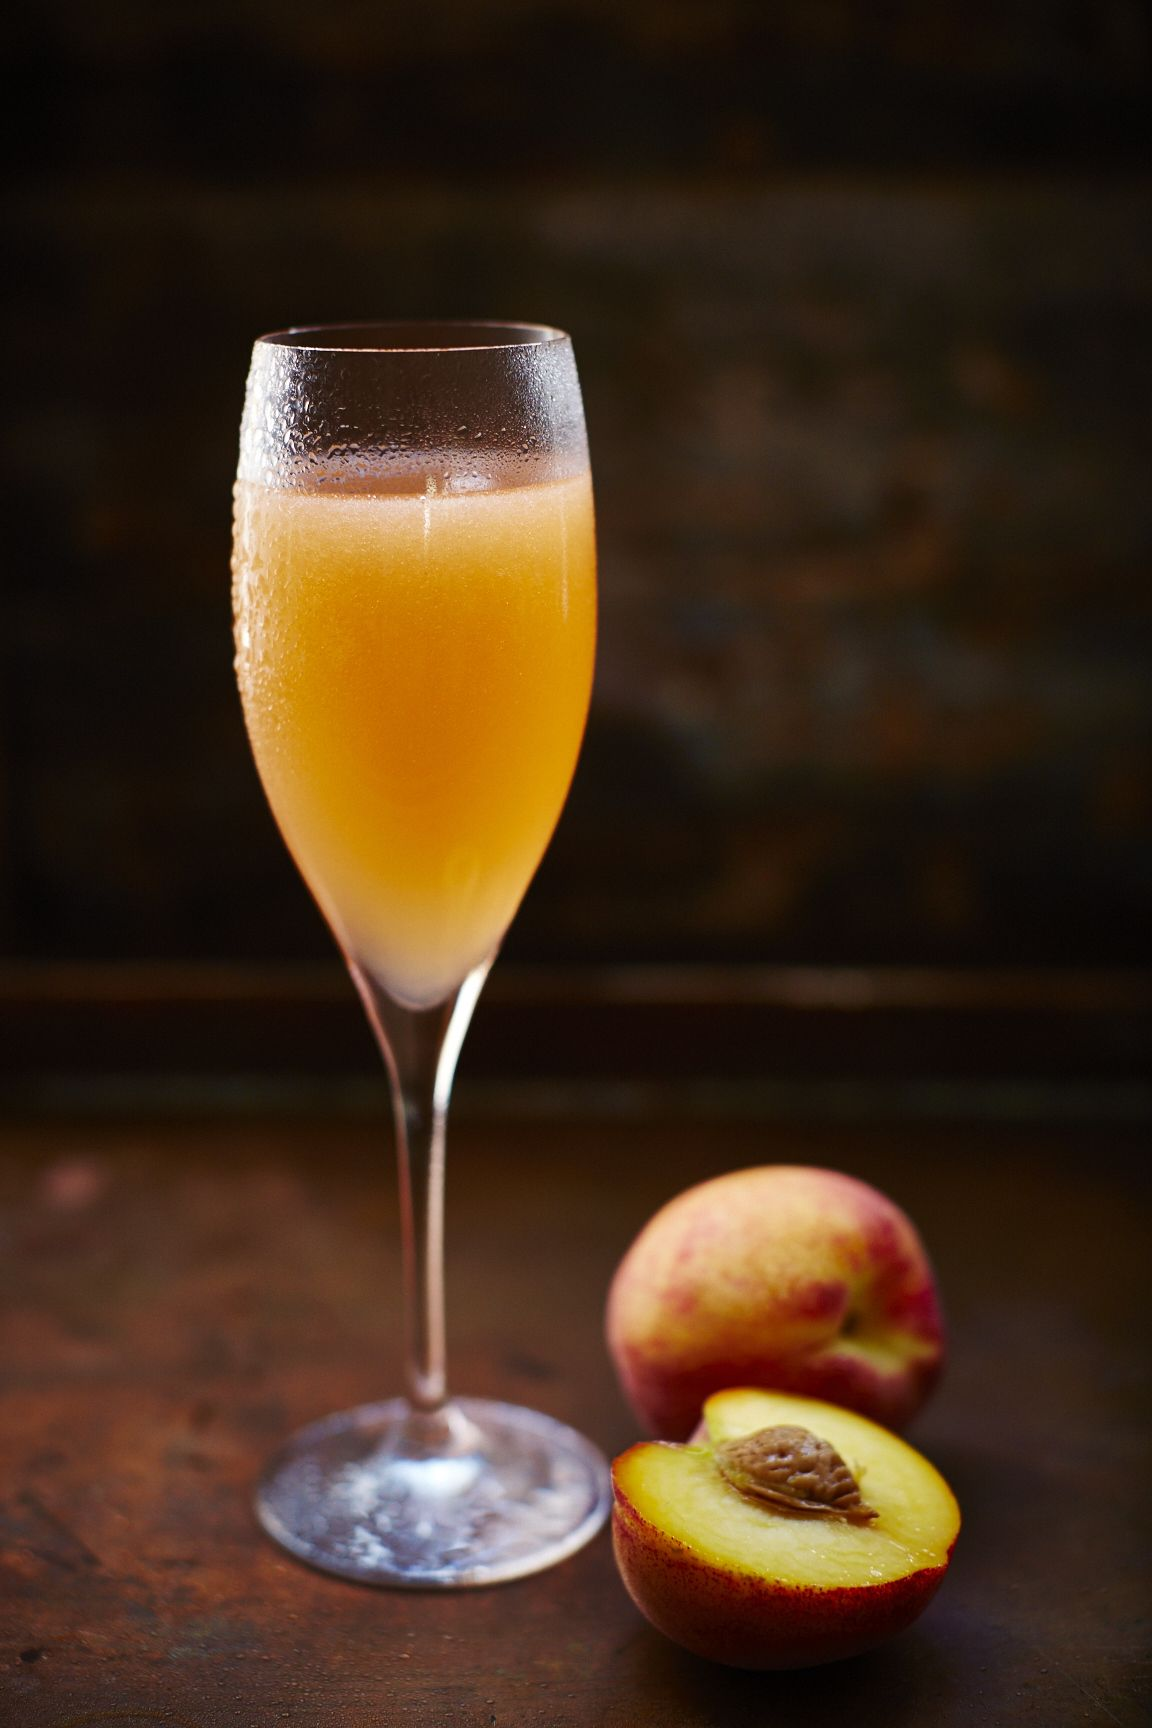 The classic peach Bellini cocktail with peaches and ...